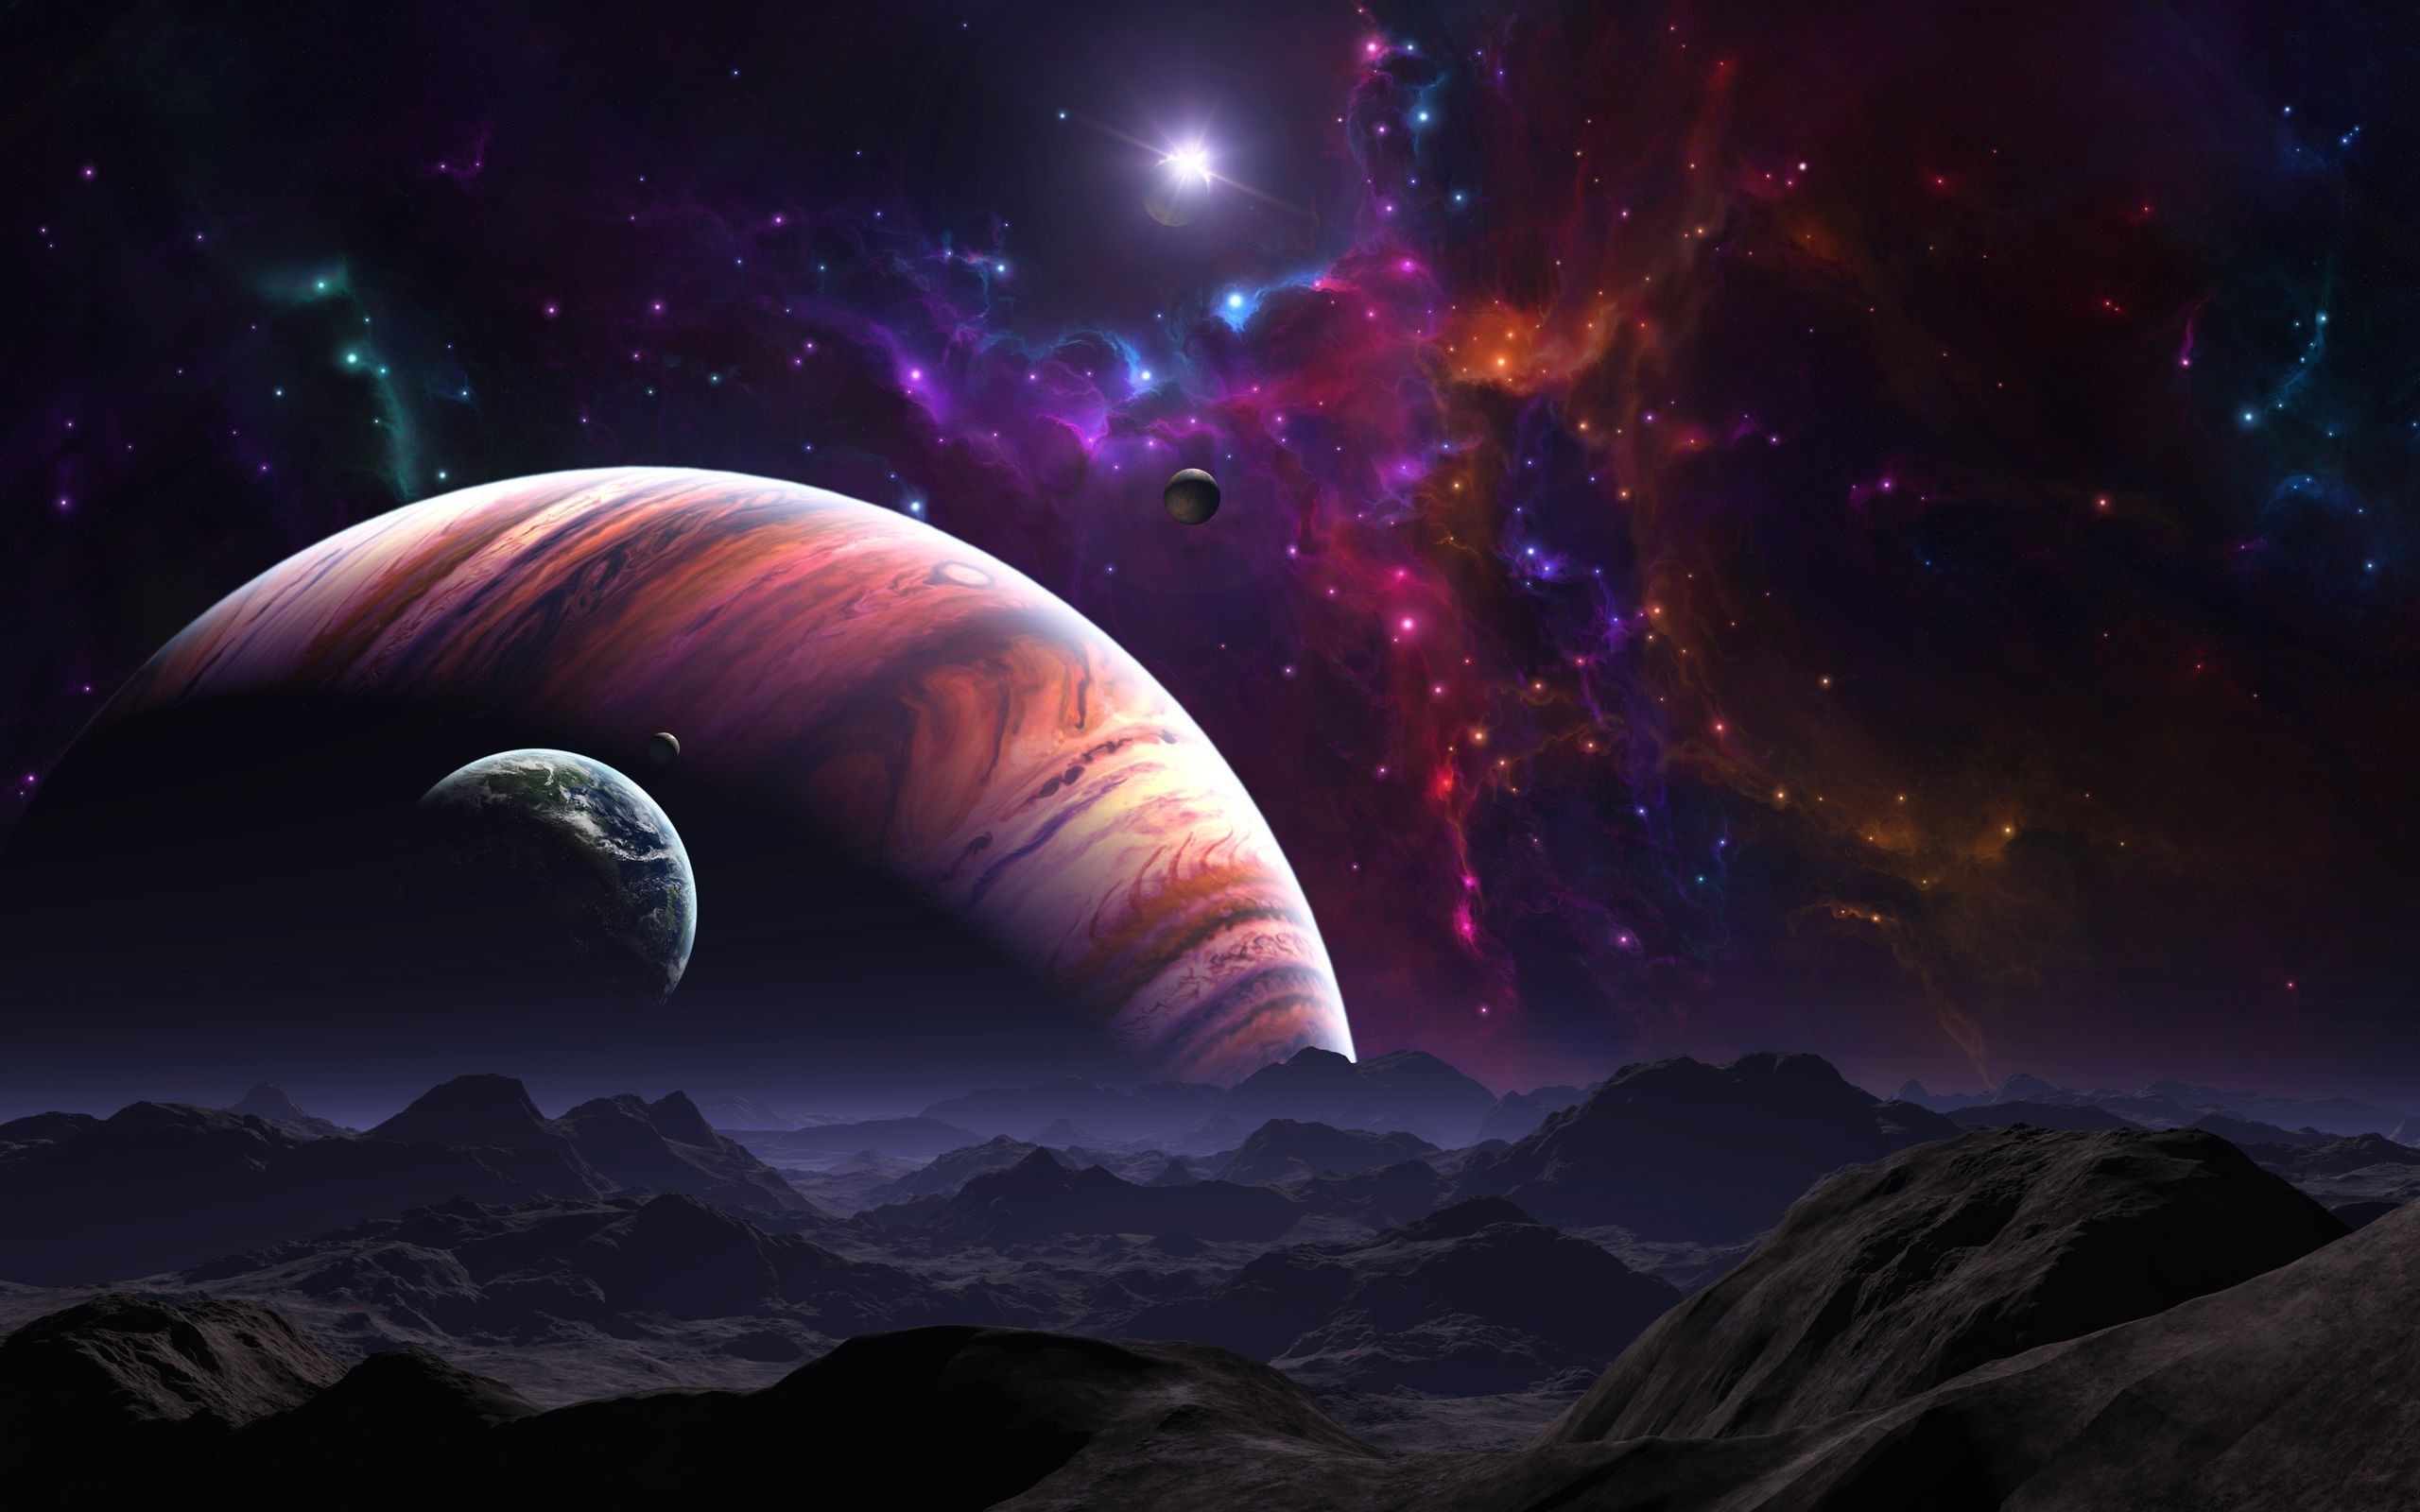 wallpaper, space, outer, background, cool, images